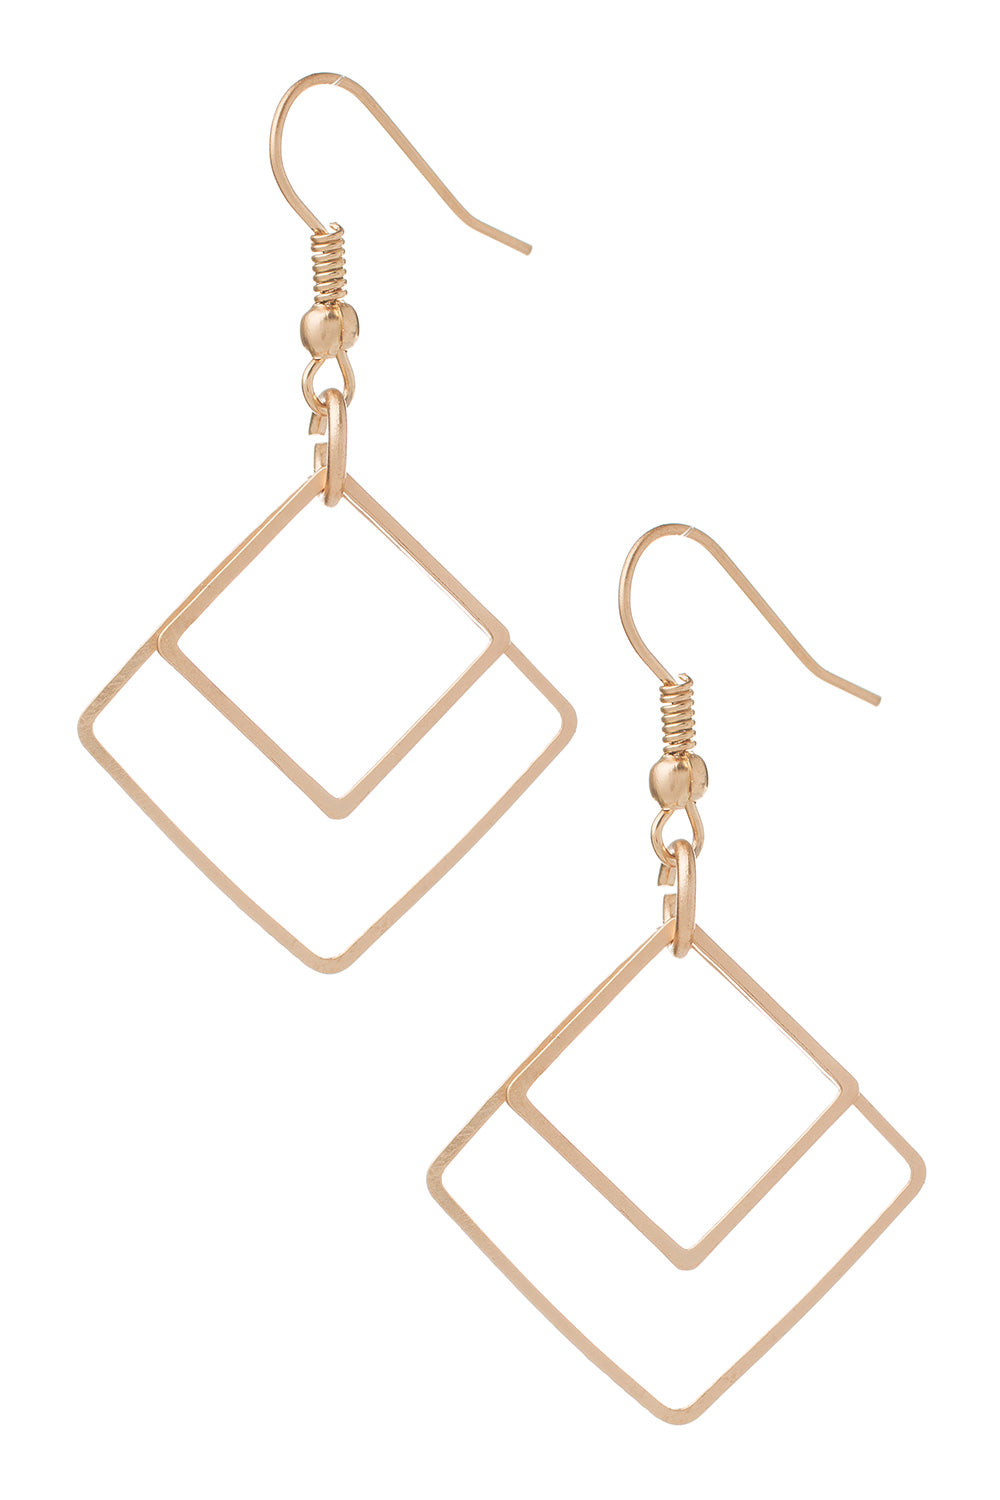 Type 3 Fair and Square Earrings